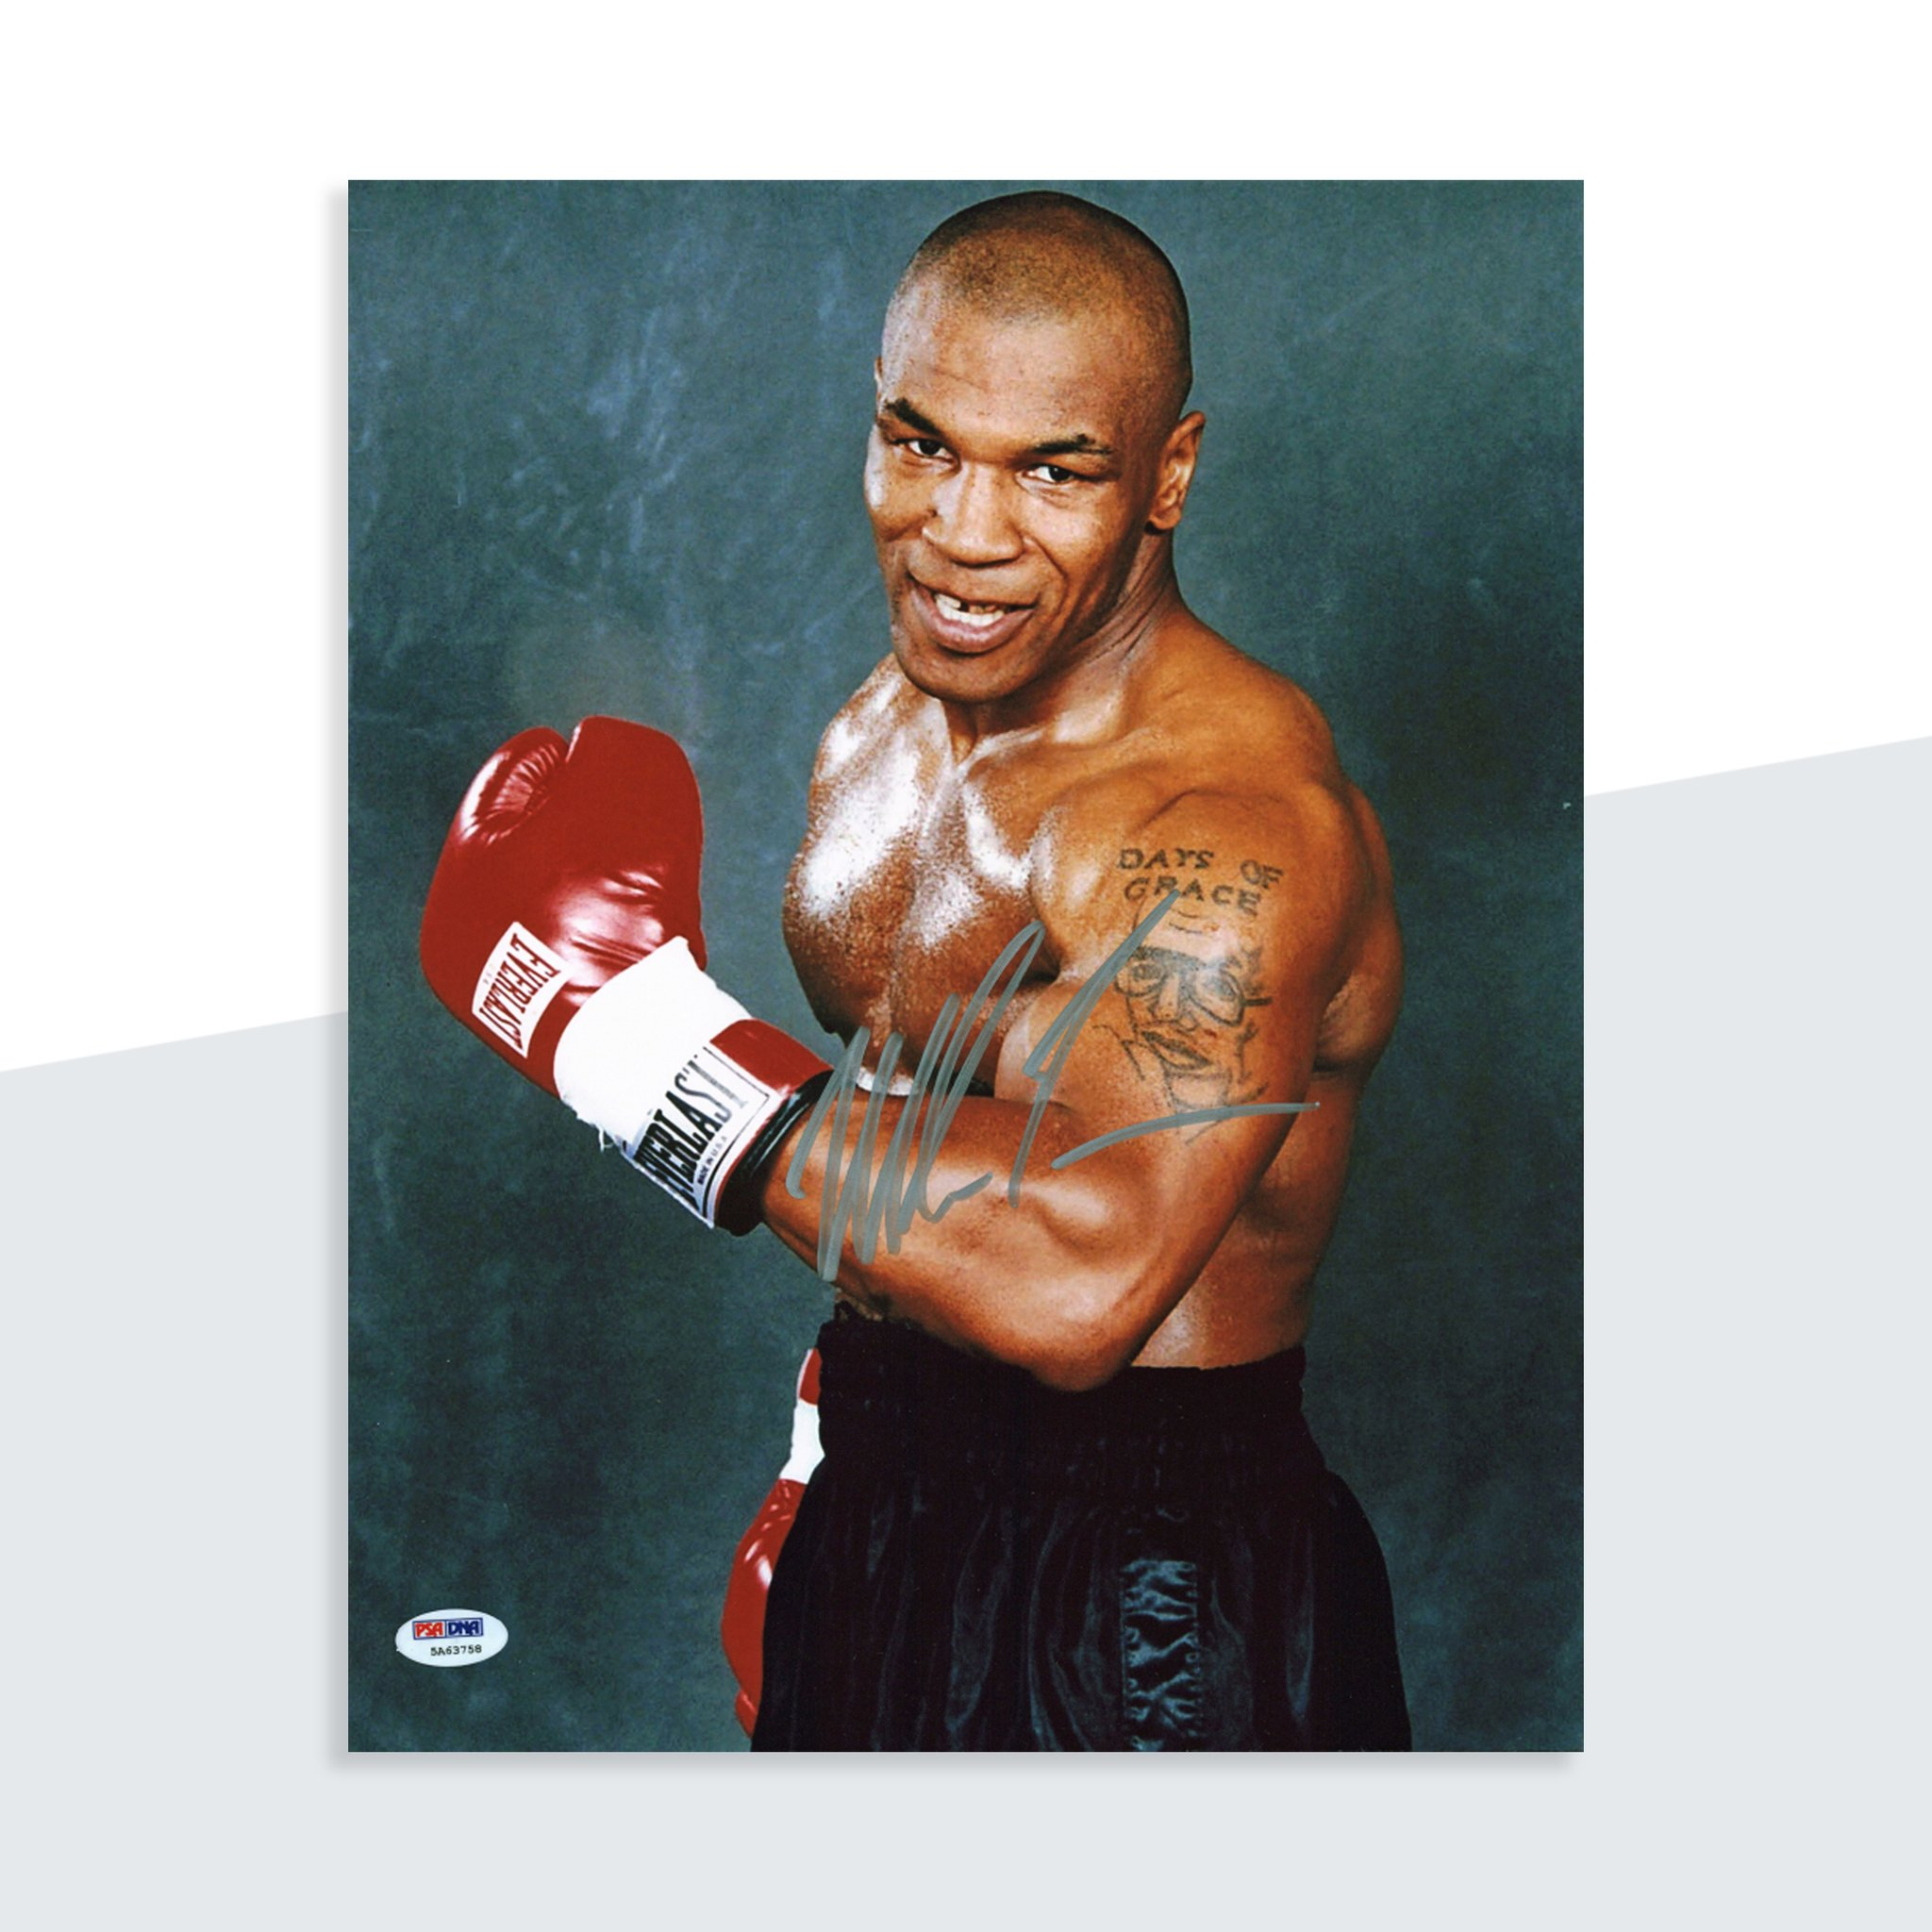 Remessage to wish Mike Tyson a happy birthday